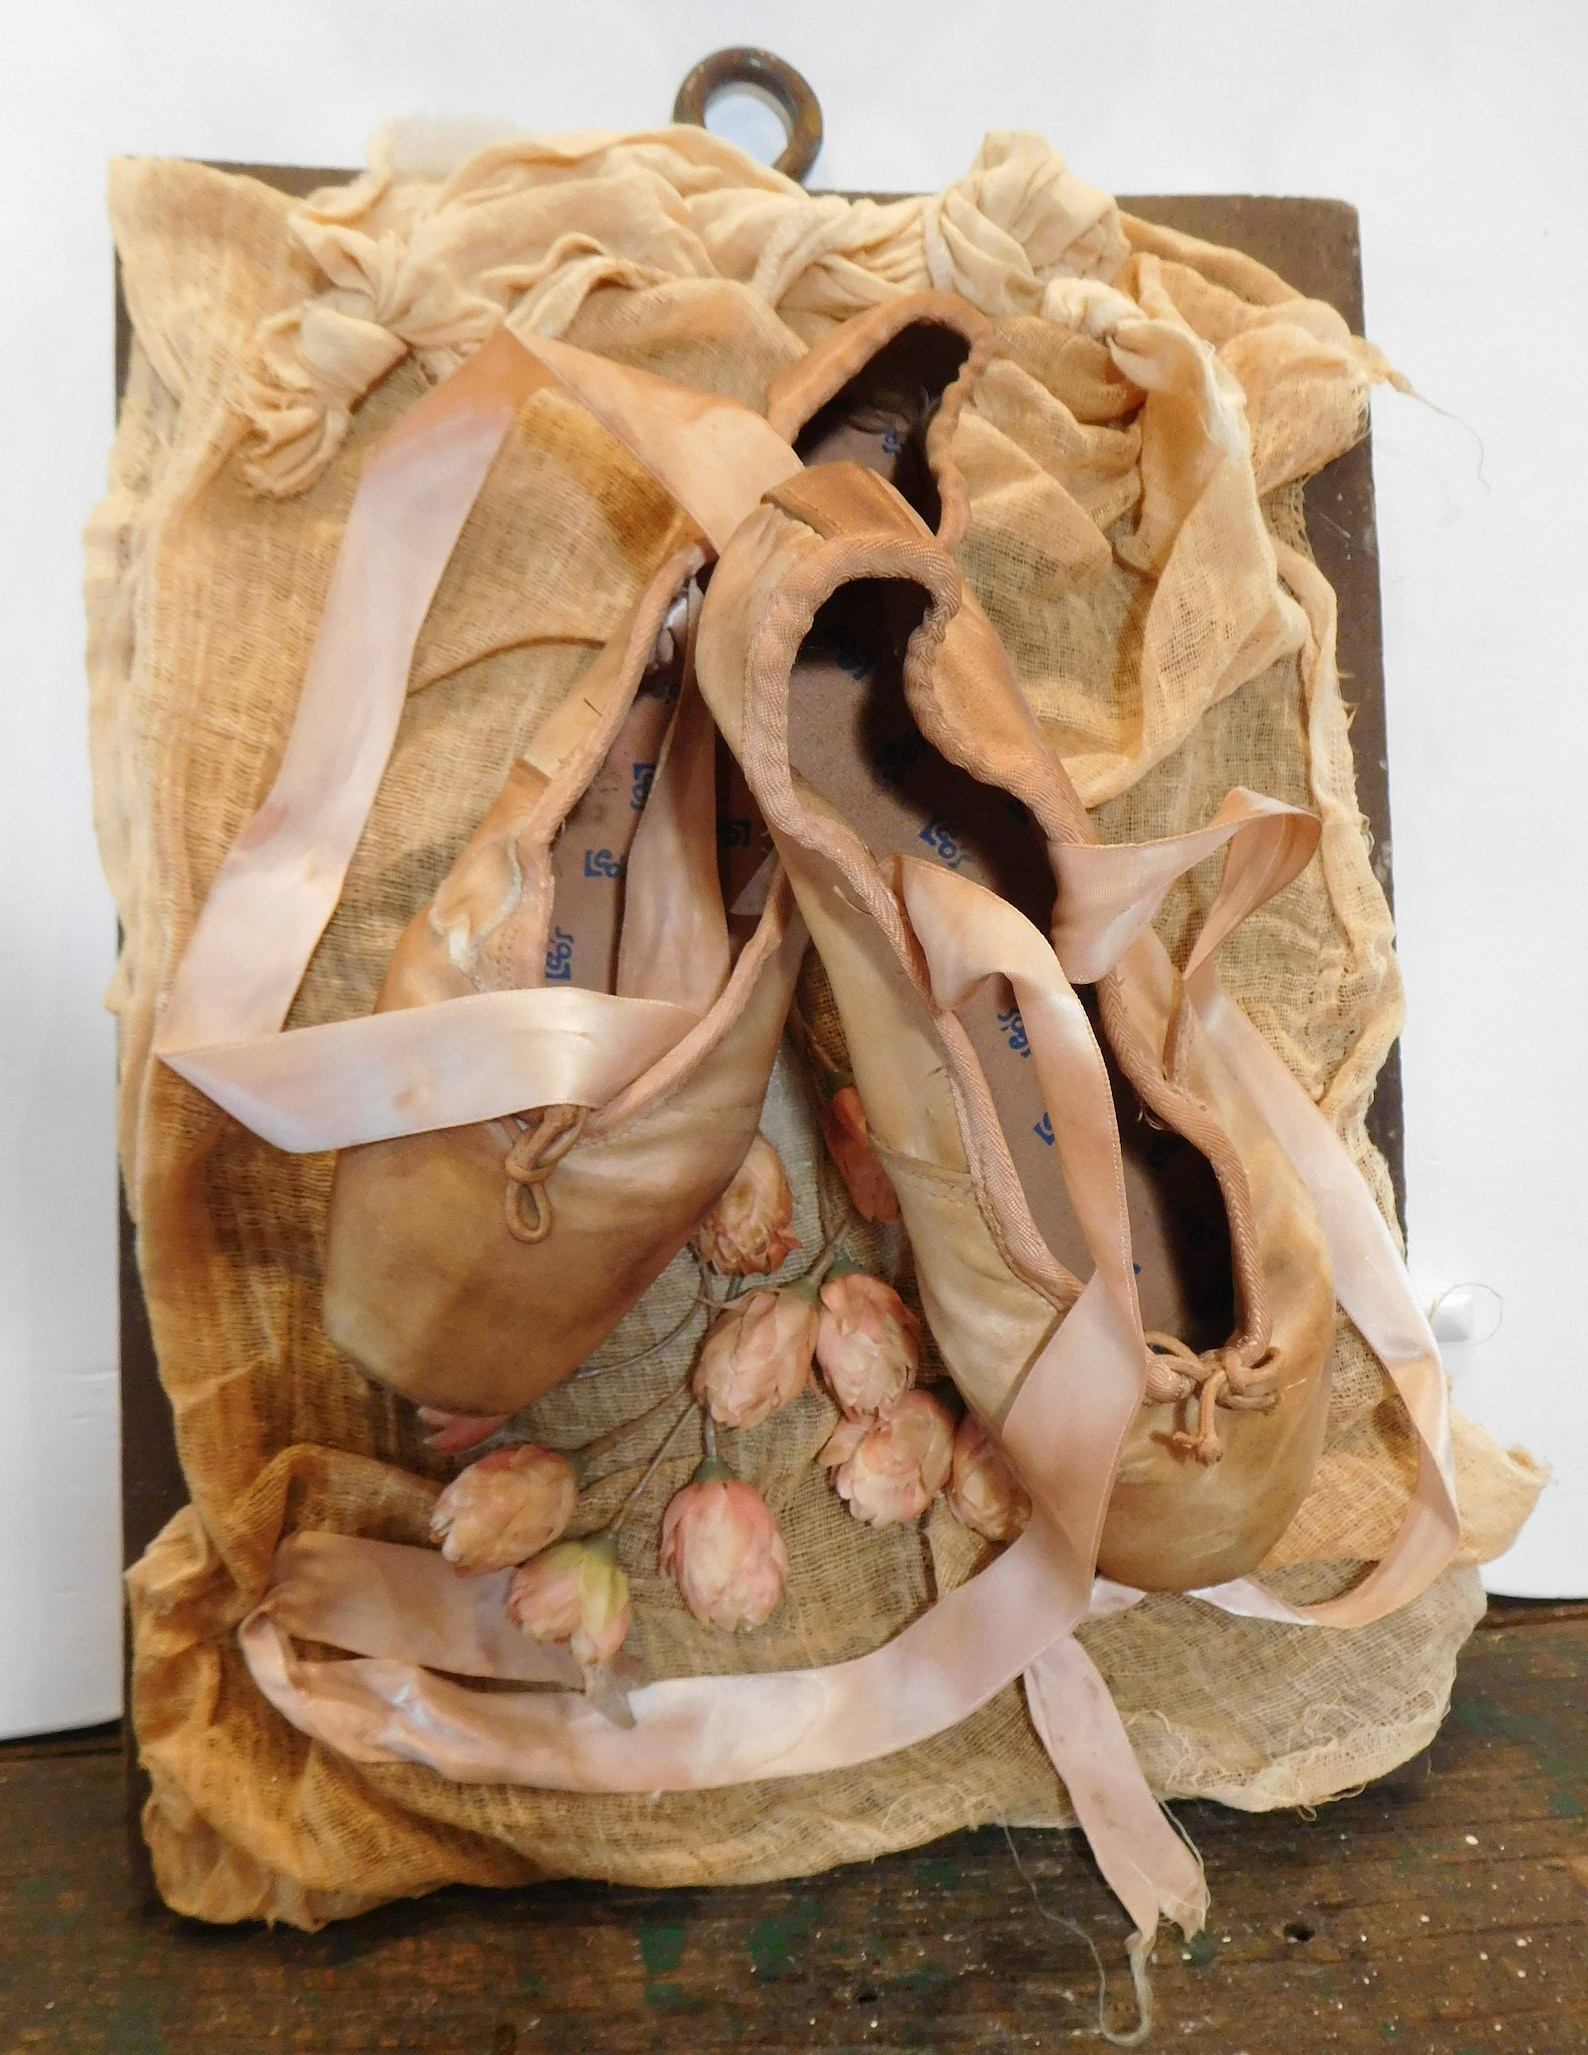 ballet pointe old peach dyed shoes,vintage w/ roses and satin ribbon,brocante decor,ooak,paris style decor,rustedsilkreloaded